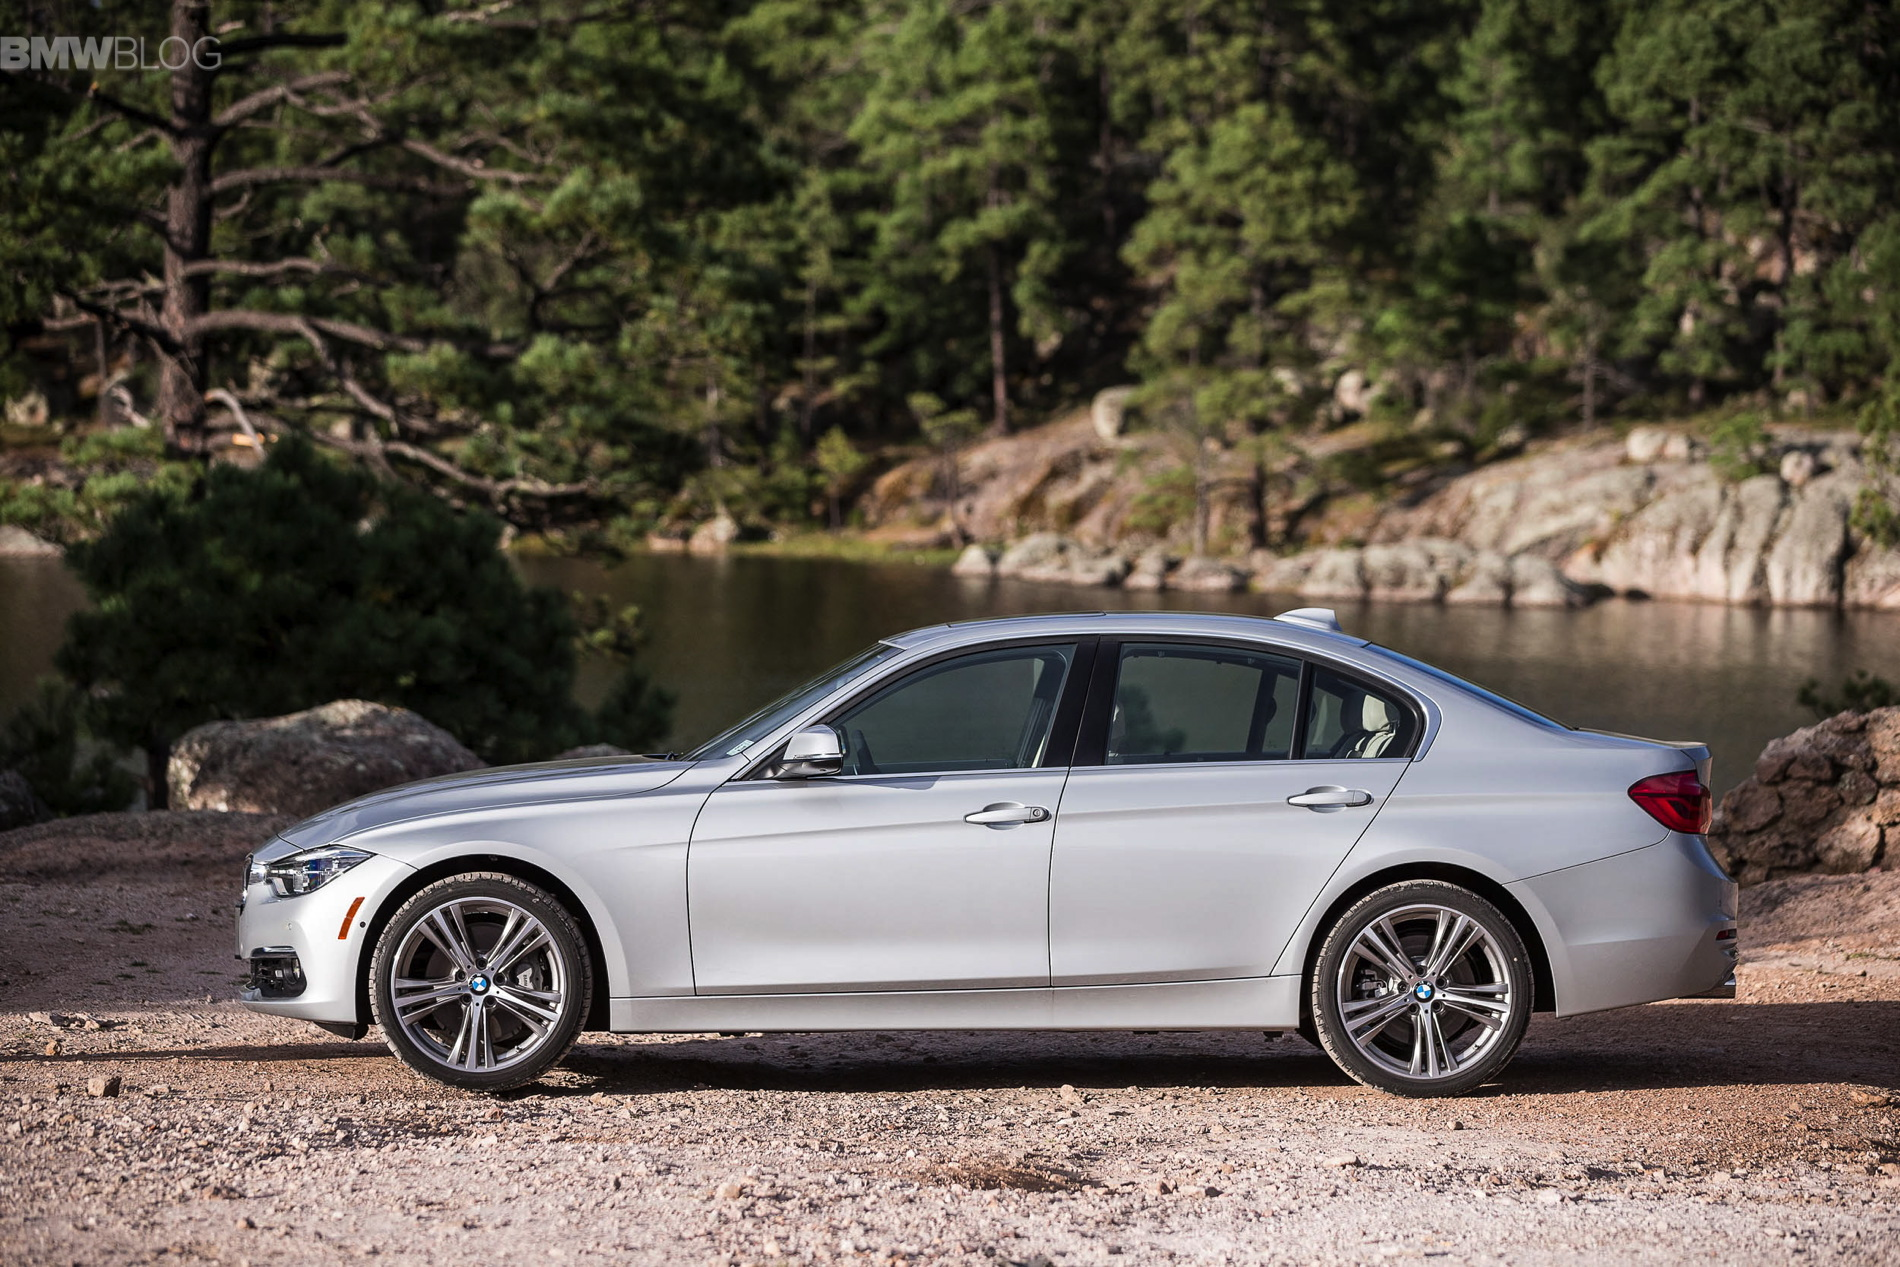 2016 bmw 340i test drive images 59